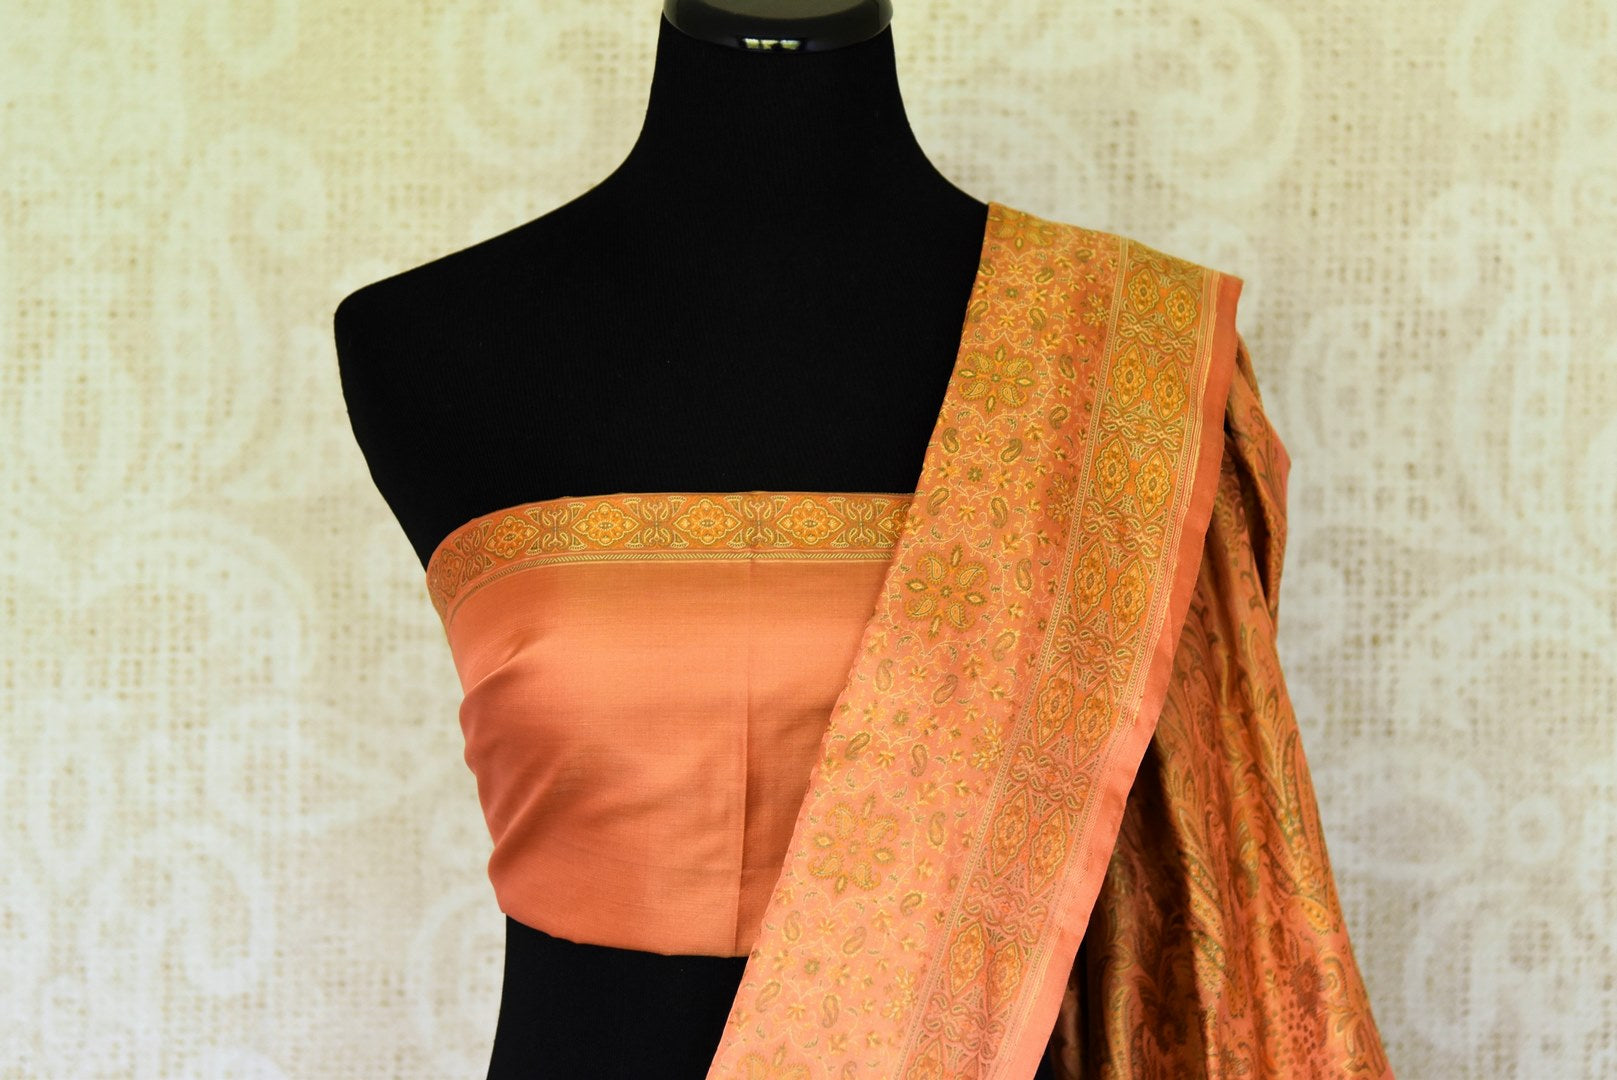 Grace special ocassions in this attractive orange banarsi silk saree with stunning tanchoi print, Style this stunning sari with a gold-orange plain blouse to steal the limelight. Shop georgette sarees, linen sari, chiffon saree online or visit Pure Elegance store, USA.-blouse pallu